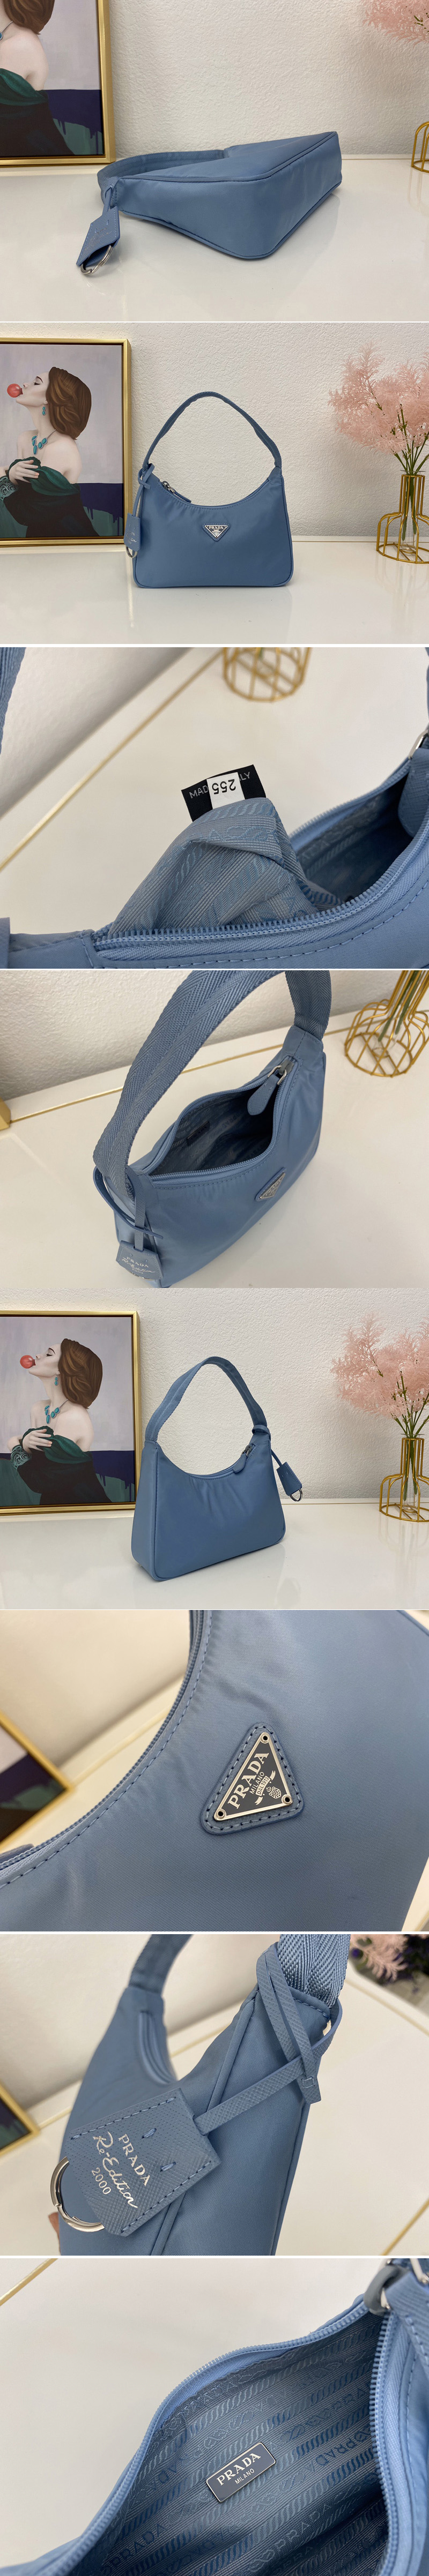 Replica Prada 1NE515 Re-Edition 2000 nylon mini-bag in Blue Nylon